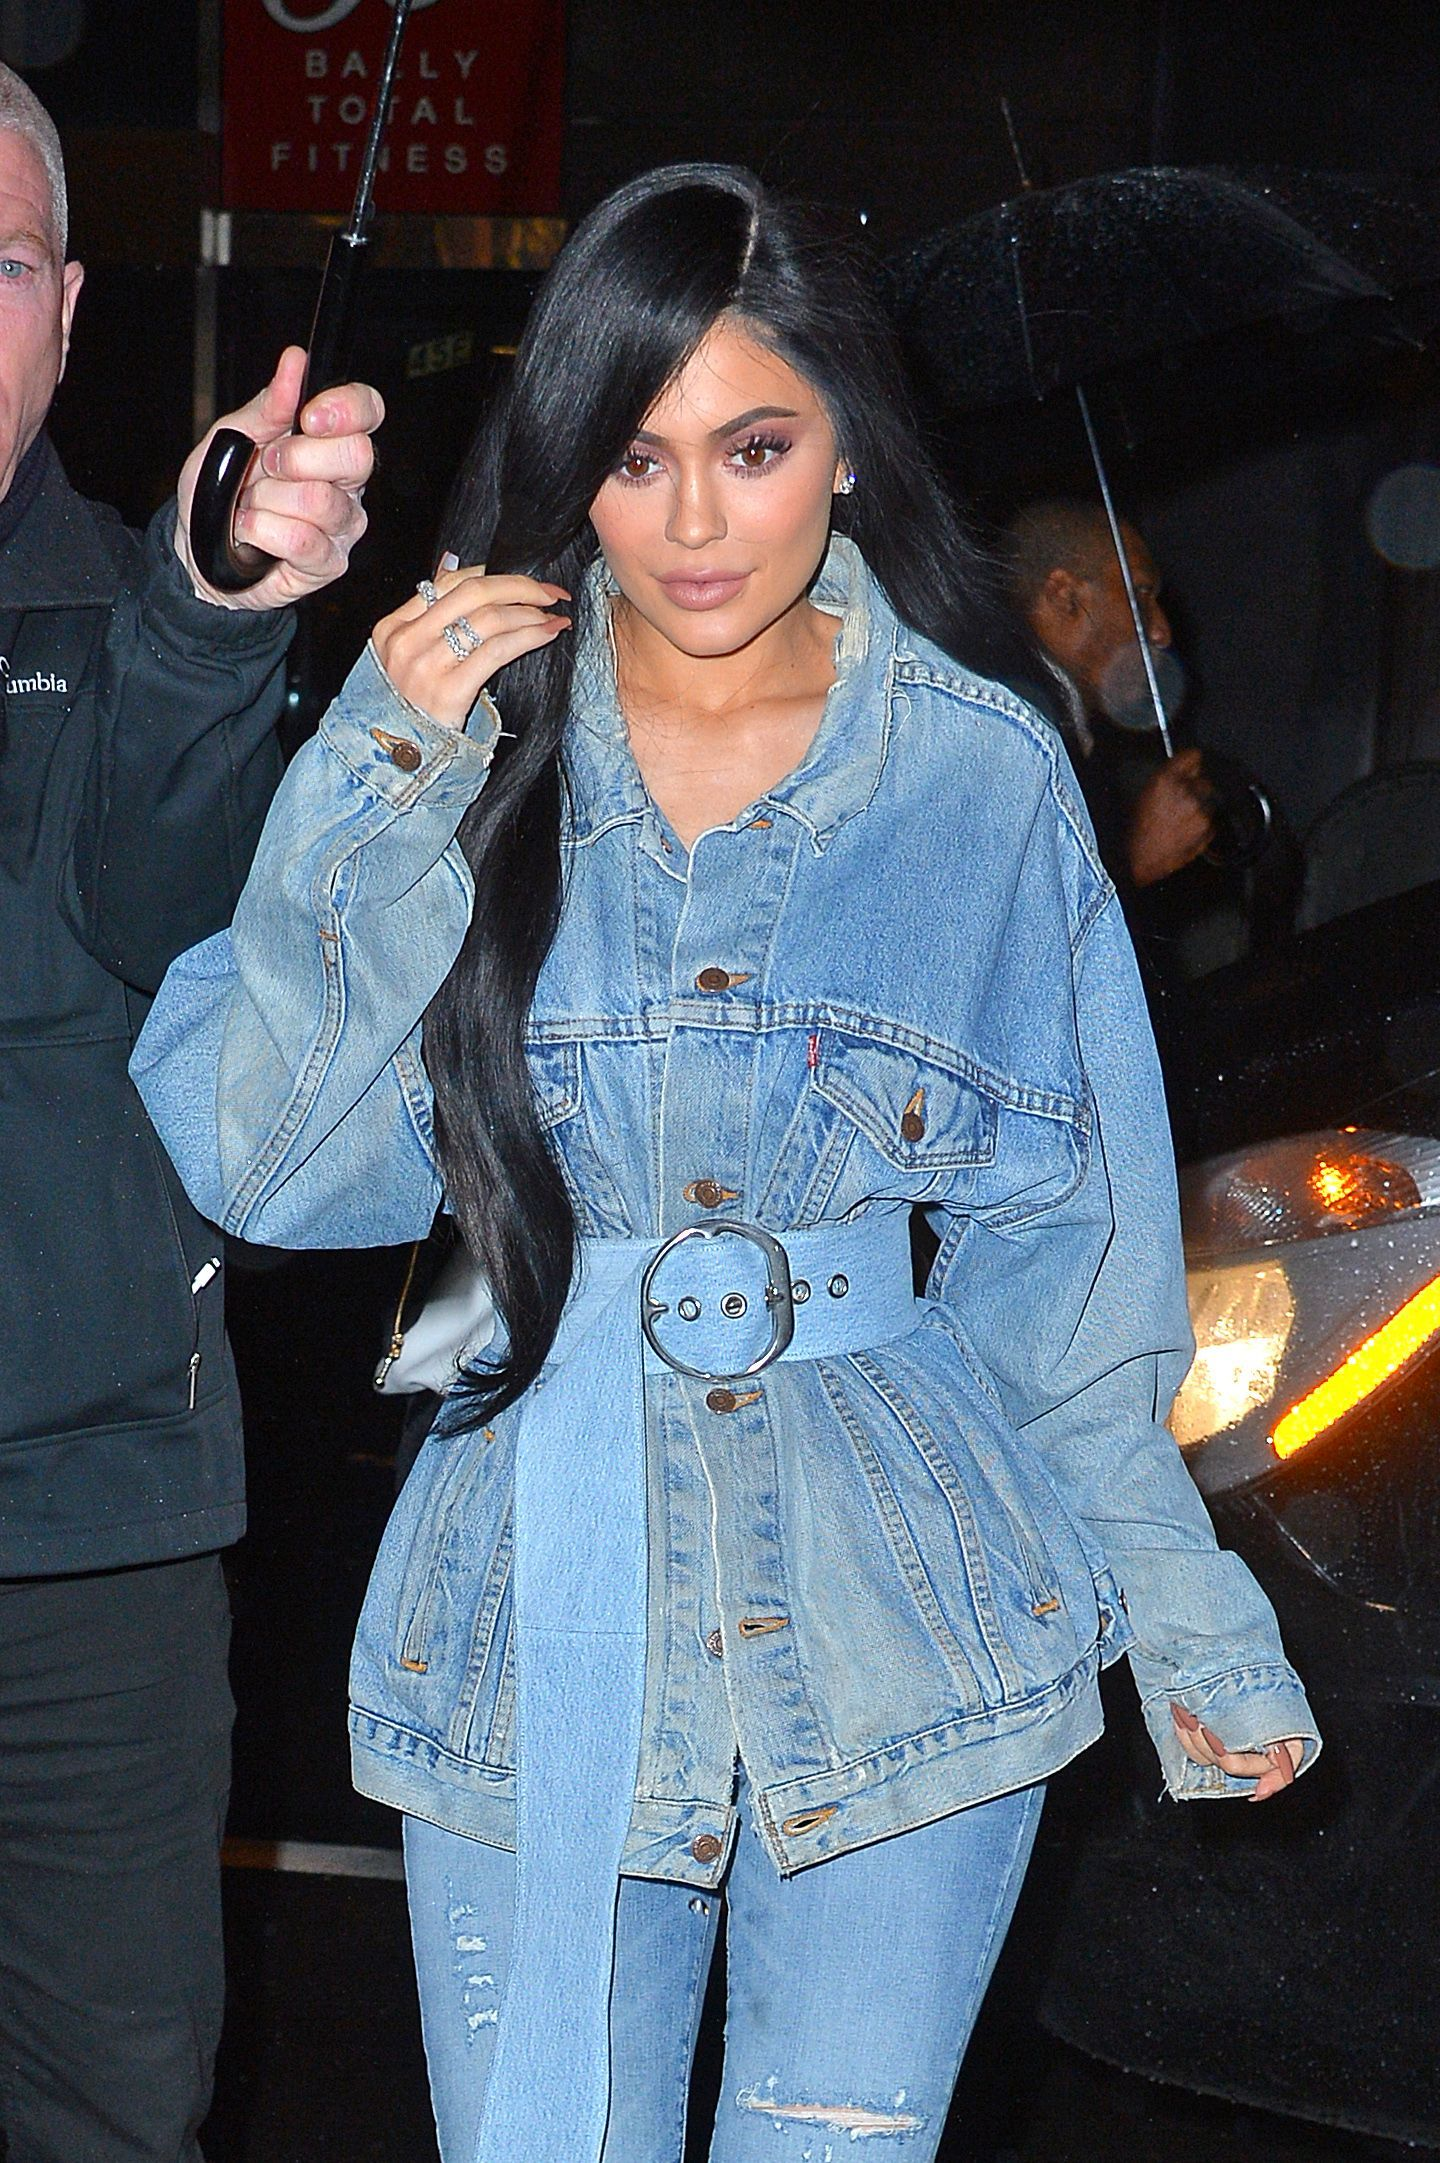 kylie jenner wearing a denim jacket and jeans with super long wavy black hair